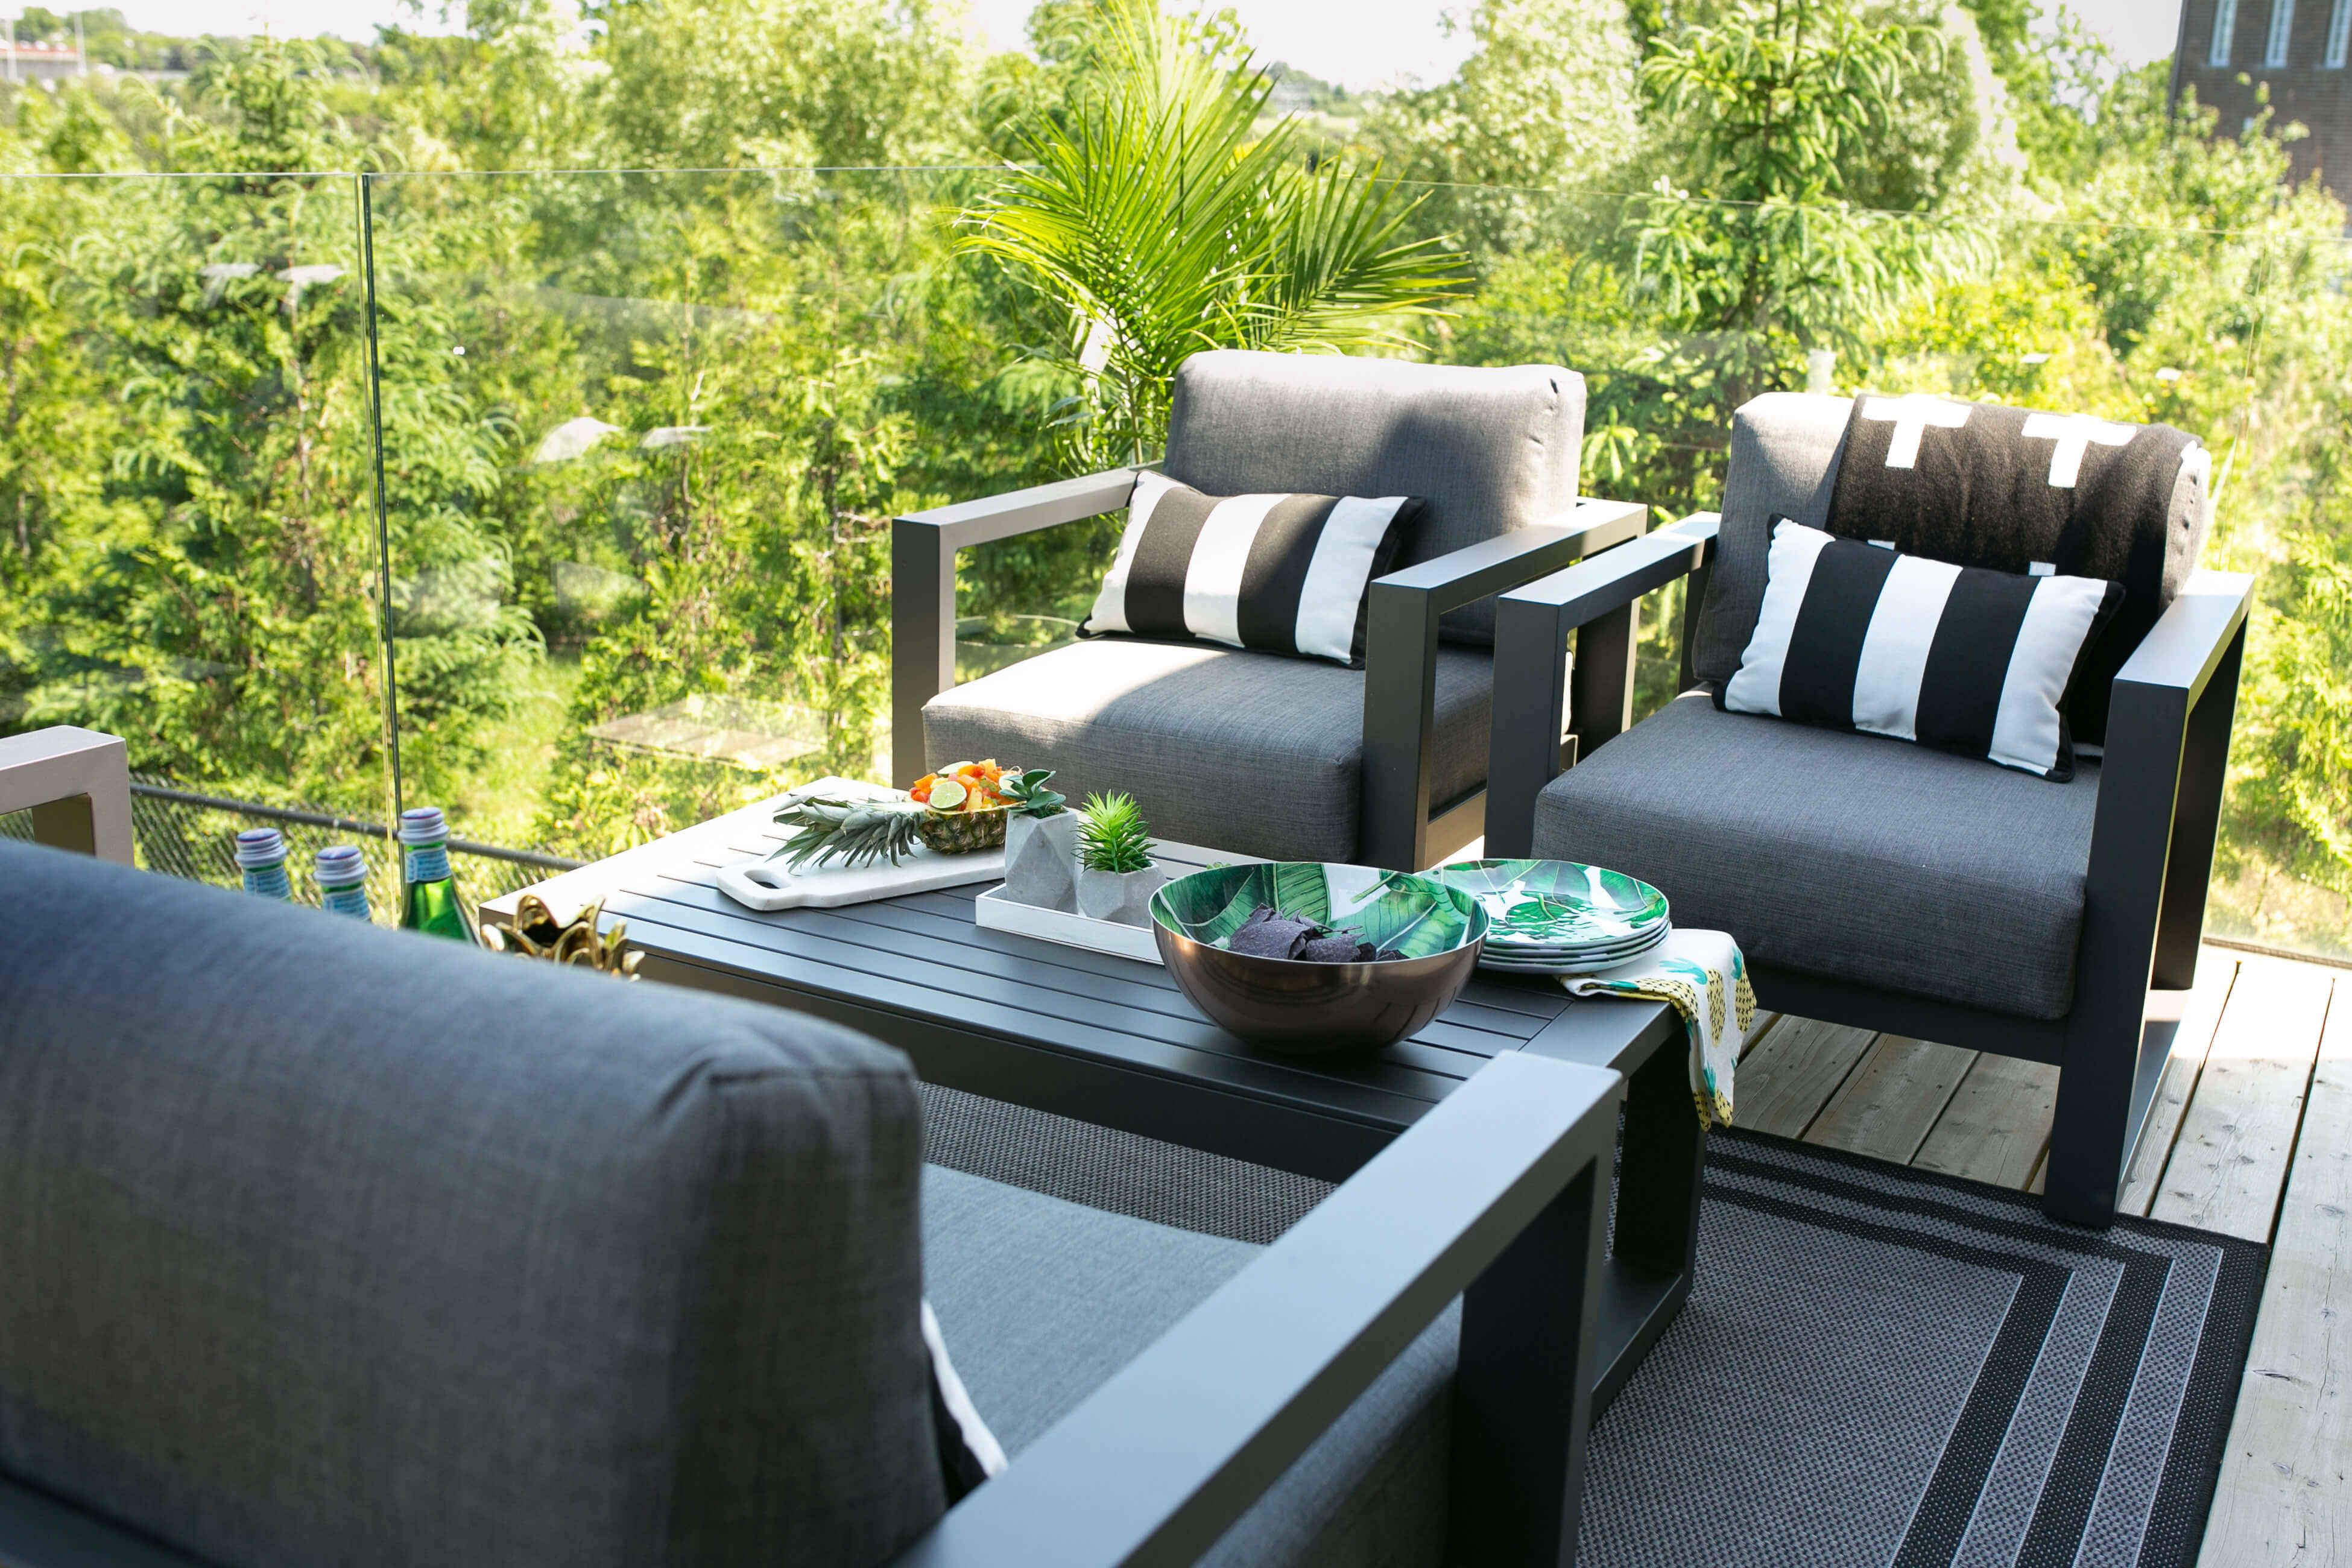 Our Patio Makeover With The Home Depot Patio Makeover Outdoor Furniture Sets Patio